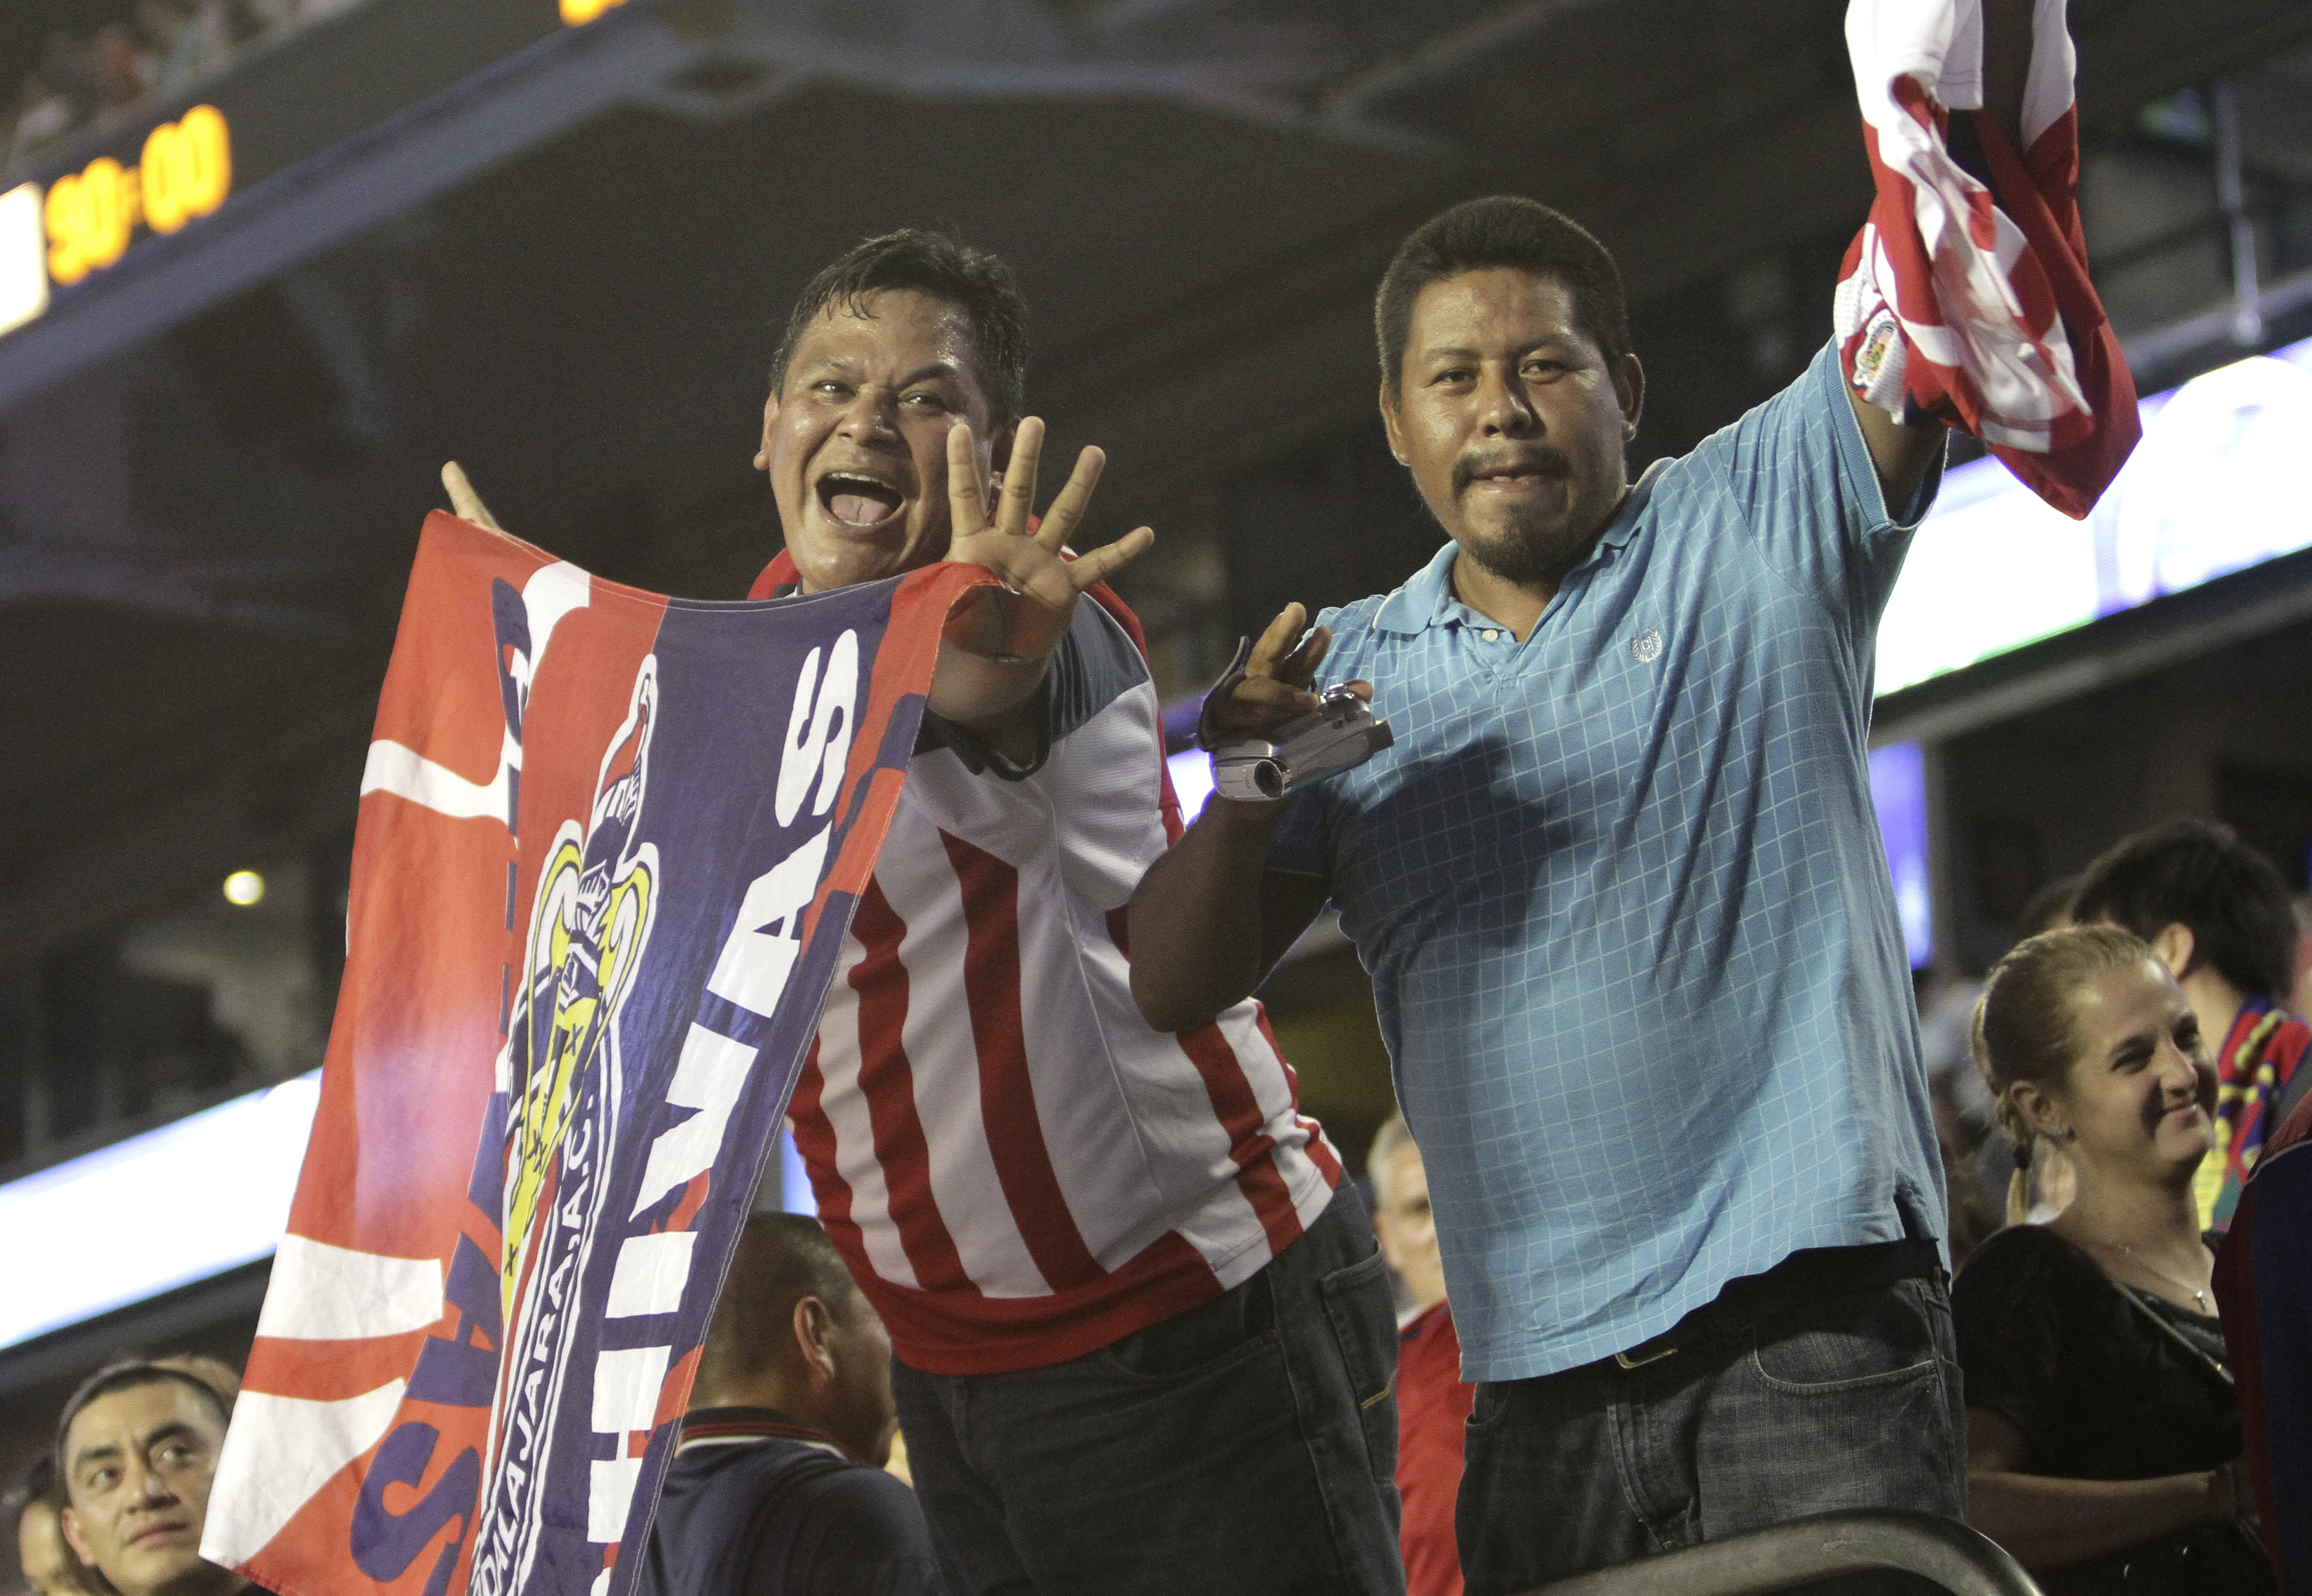 Mexico's los Chivas de Guadalajara fans celebrate after the Football Challenge Match soccer game against FC Barcelona in Miami, Wednesday, Aug. 3, 2011 against FC Barcelona. Guadalajara won 4-1. (AP Photo/J Pat Carter)